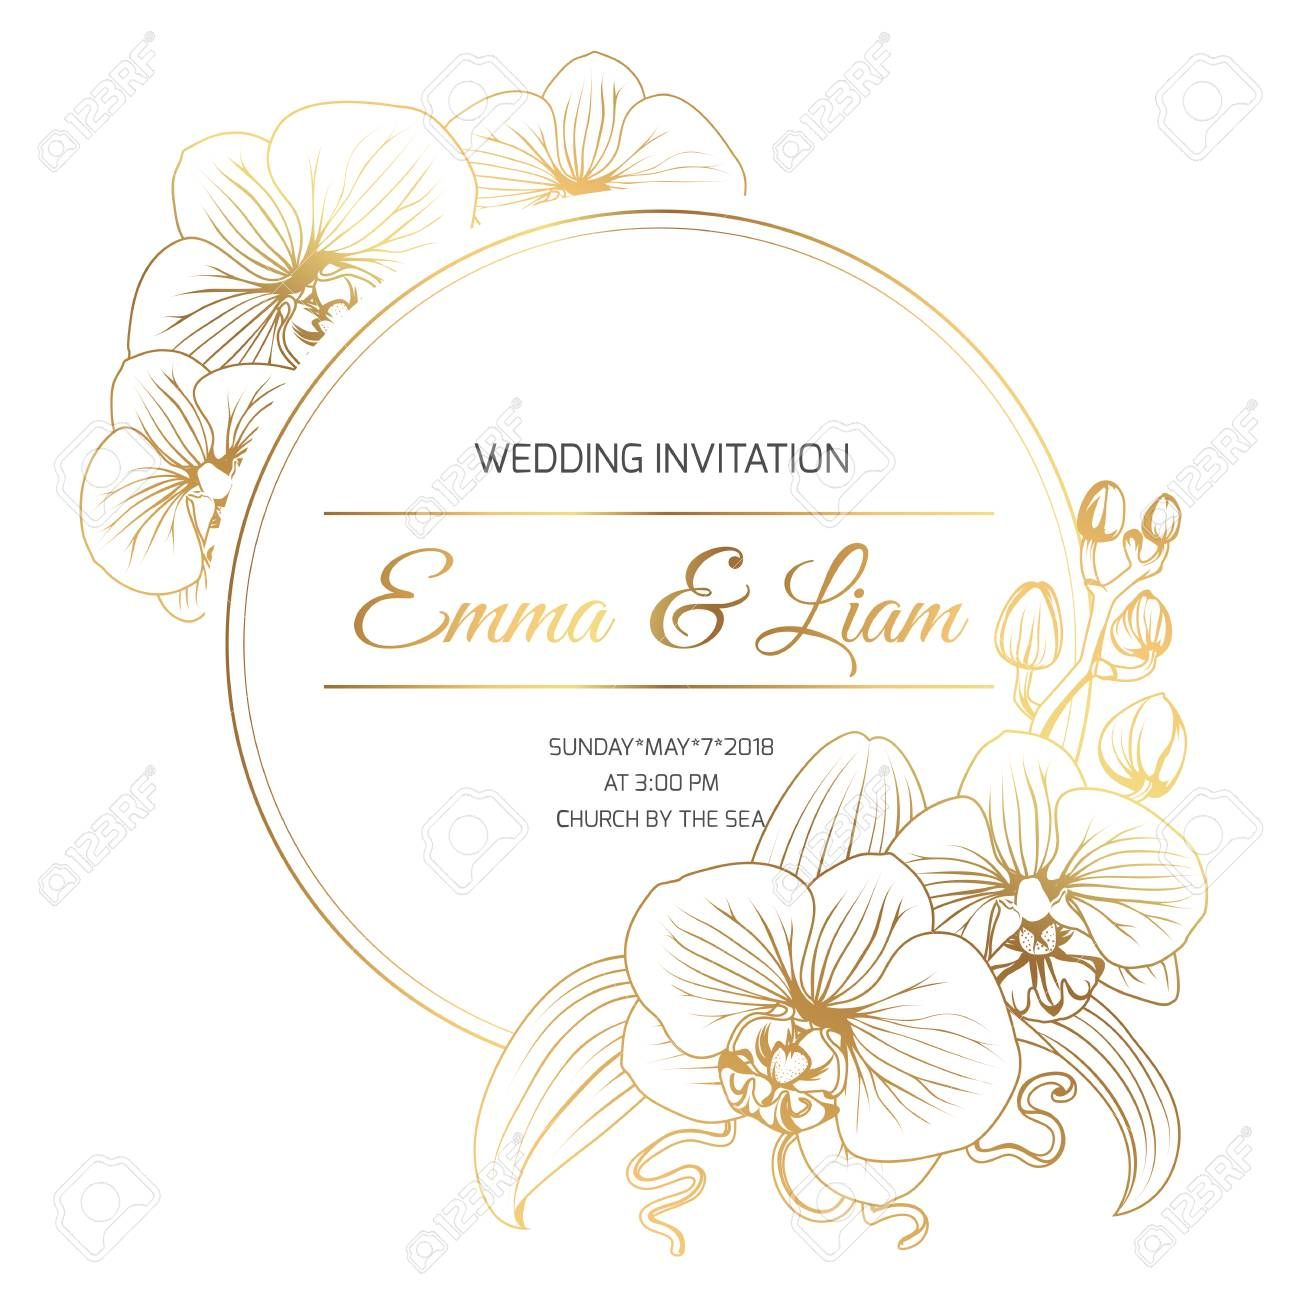 Phalaenopsis Orchid Flowers Border Frame Decoration Wedding Marriage Event Invitation Template Modern Lu Event Invitation Templates Flower Border Frame Decor,Beautiful Master Bedroom Designs For Girls